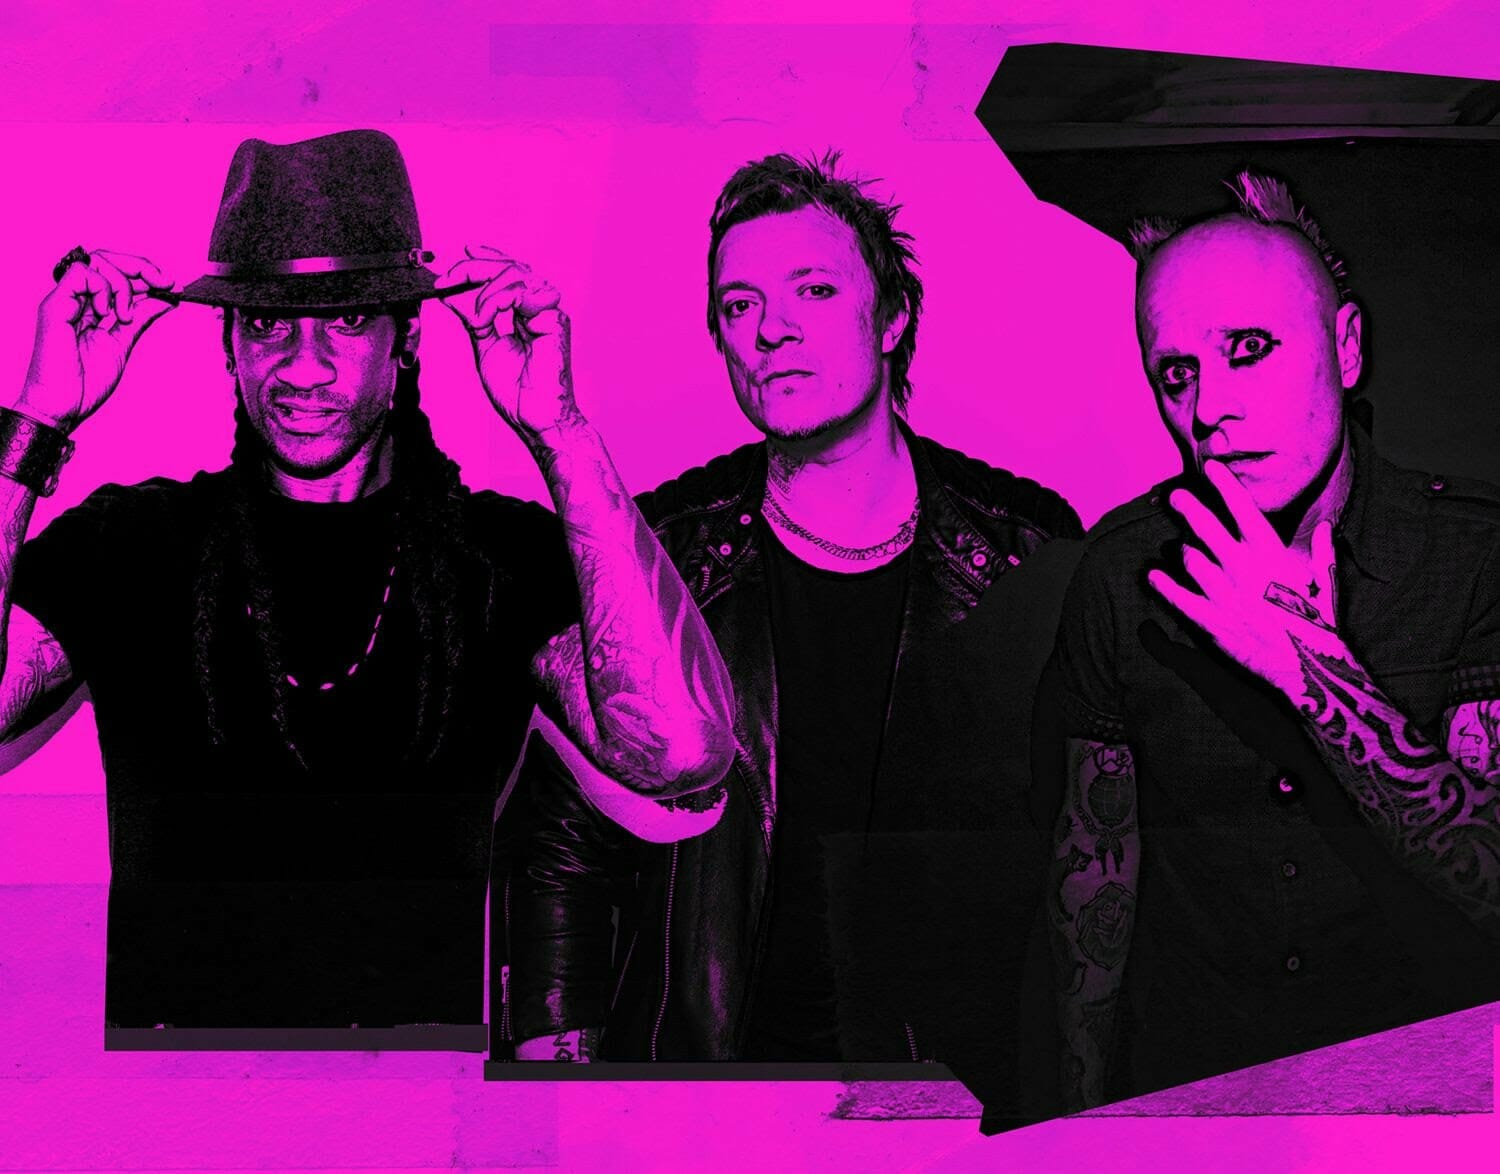 The Prodigy announce first North American shows in 10 years